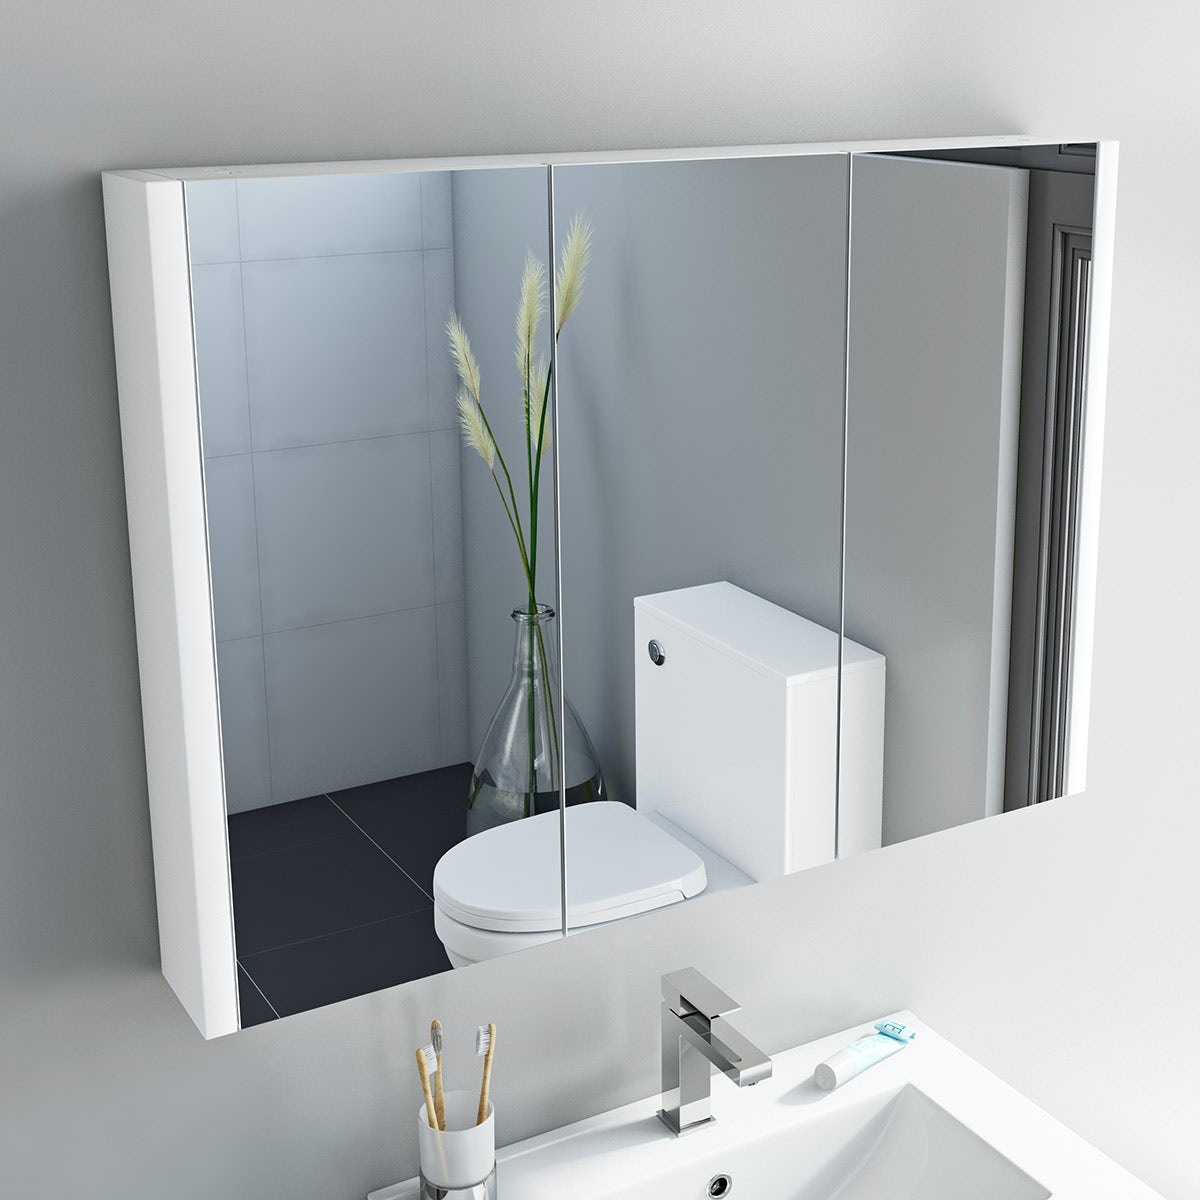 Derwent 3 door mirror cabinet